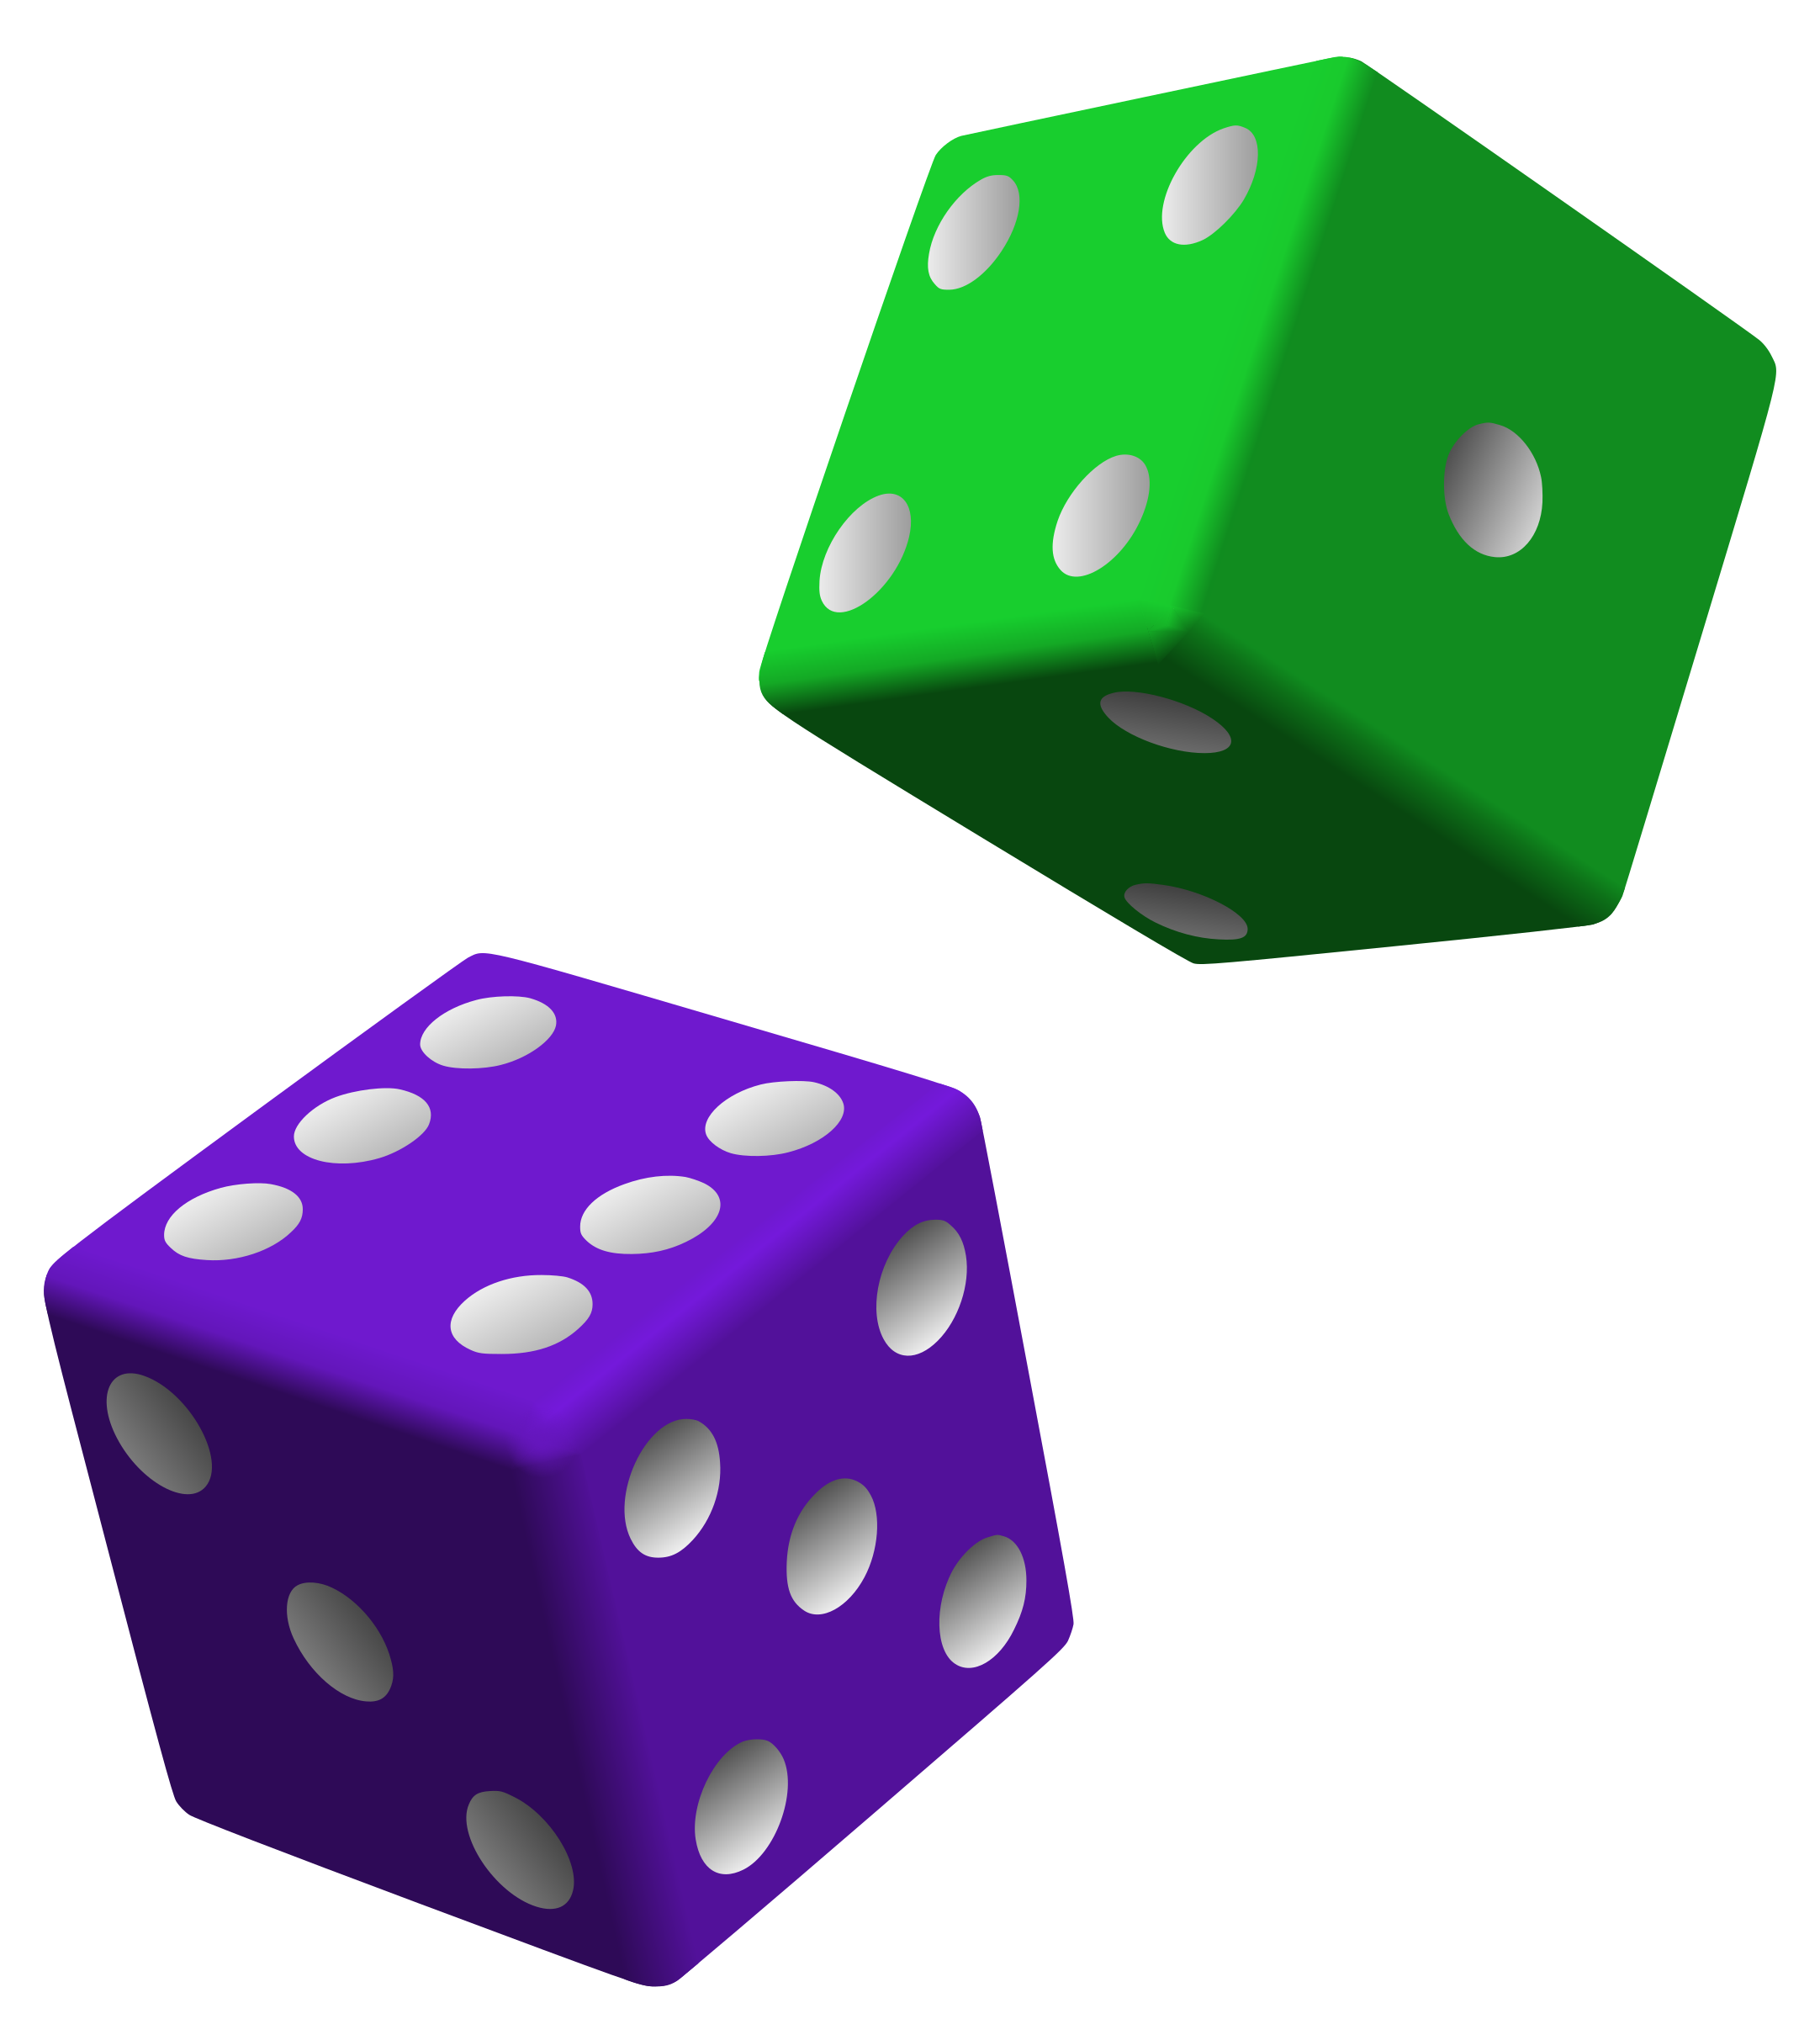 clip art Green and Purple Dice Icons PNG